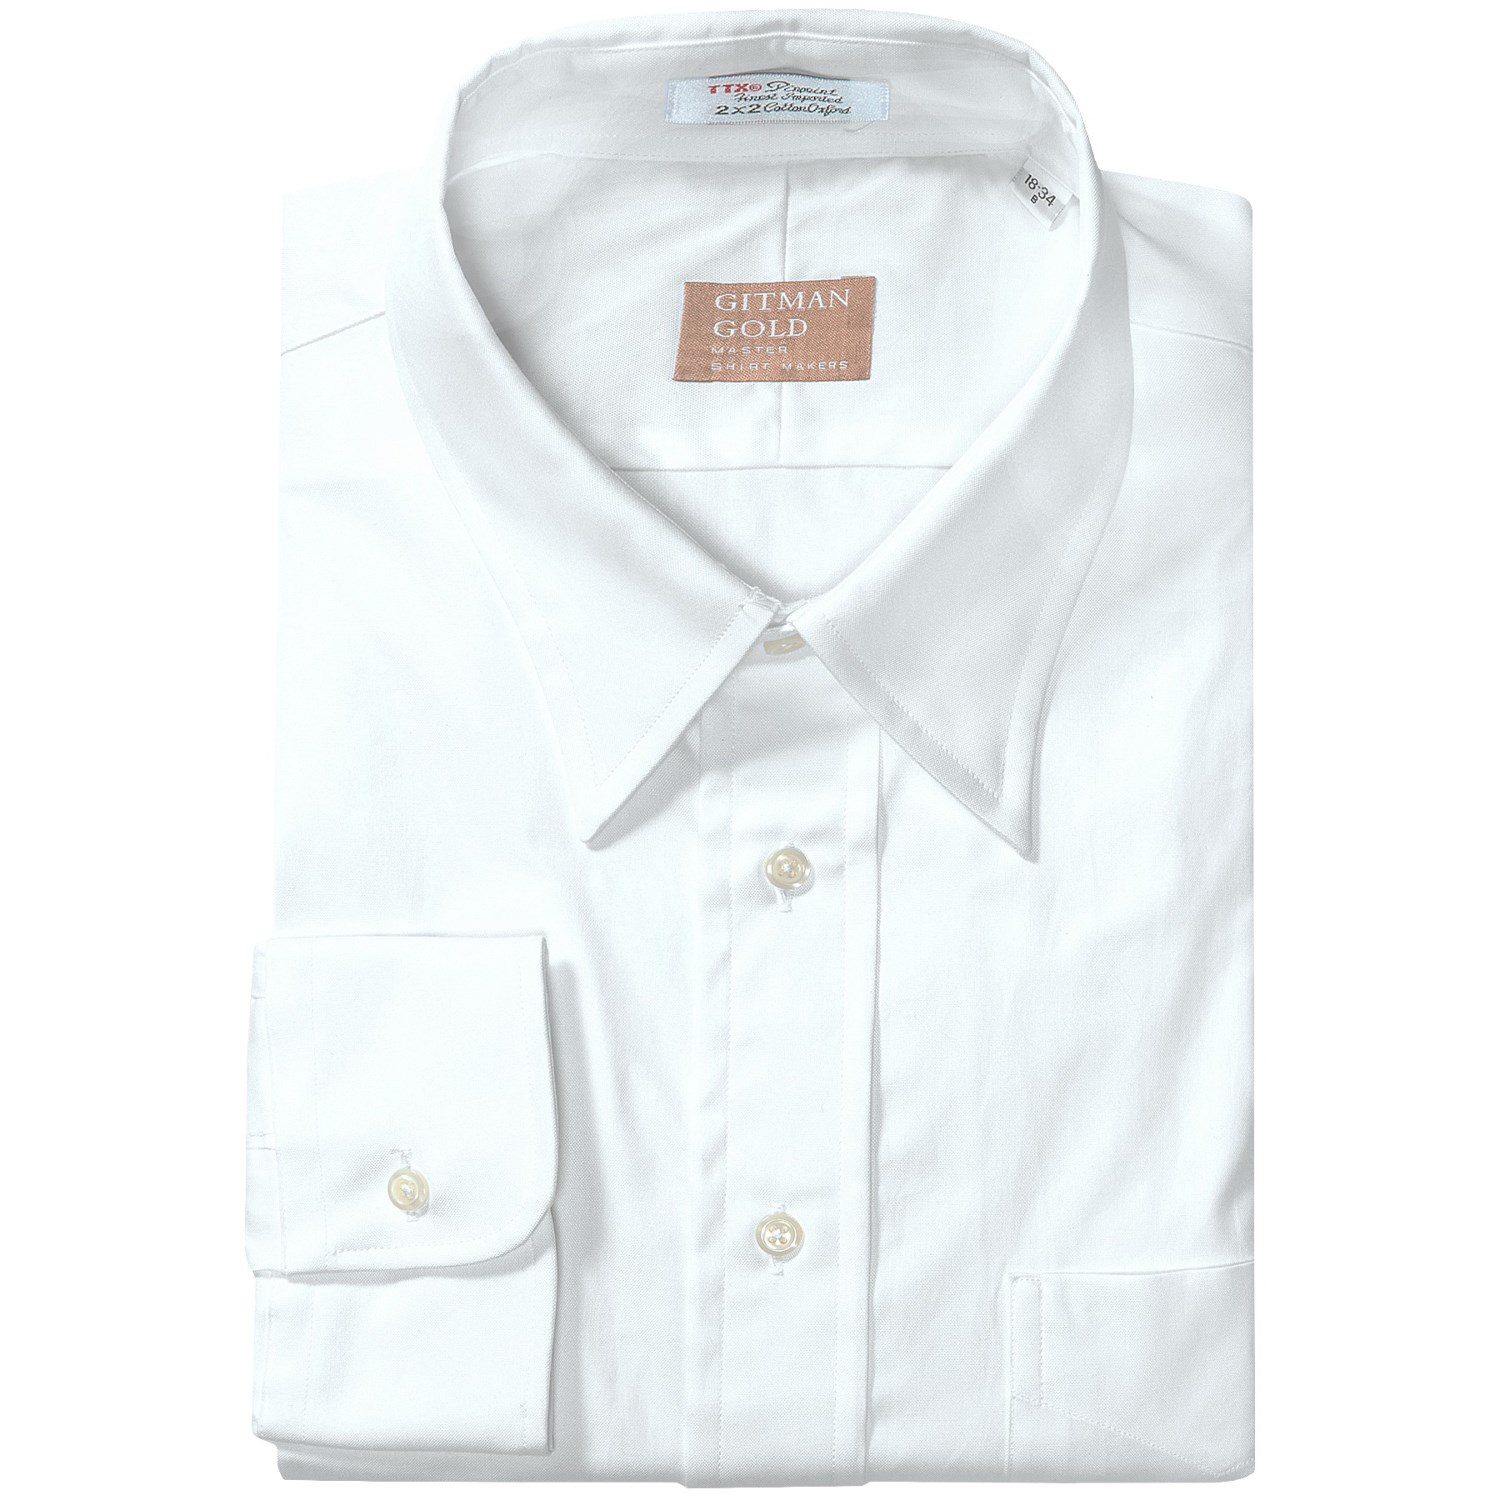 Gitman Brothers Pinpoint Cotton Dress Shirt 2 Ply Cotton